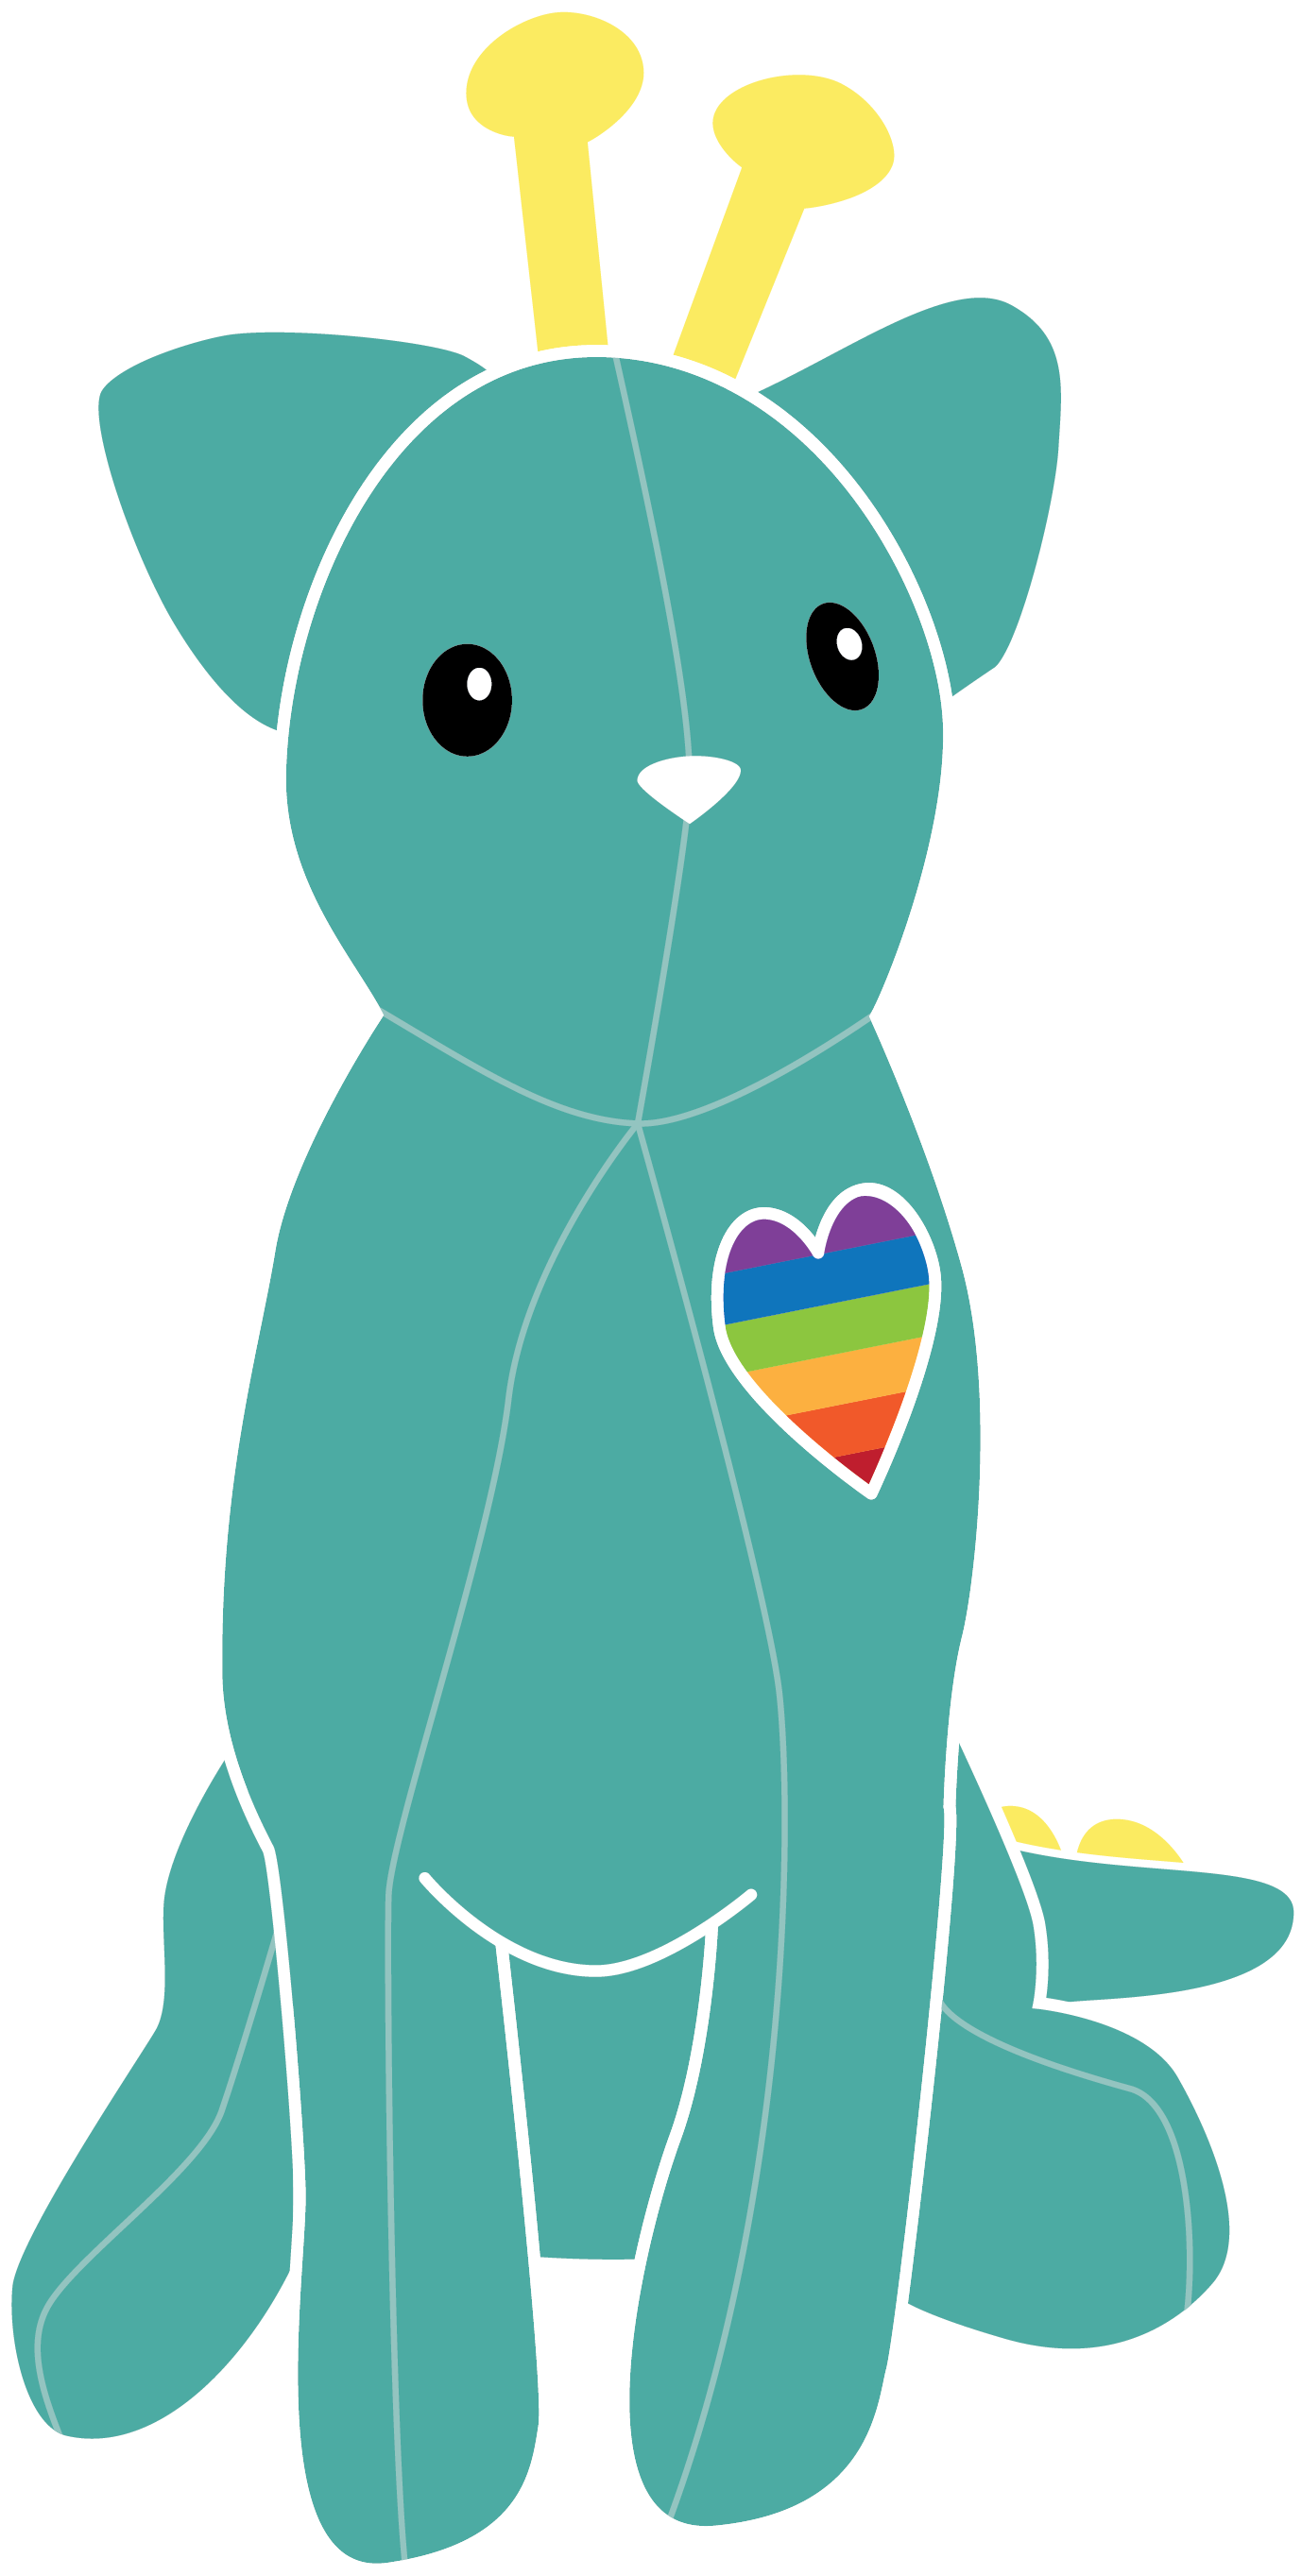 Image of Amica, a plush toy made to teach kids empathy.